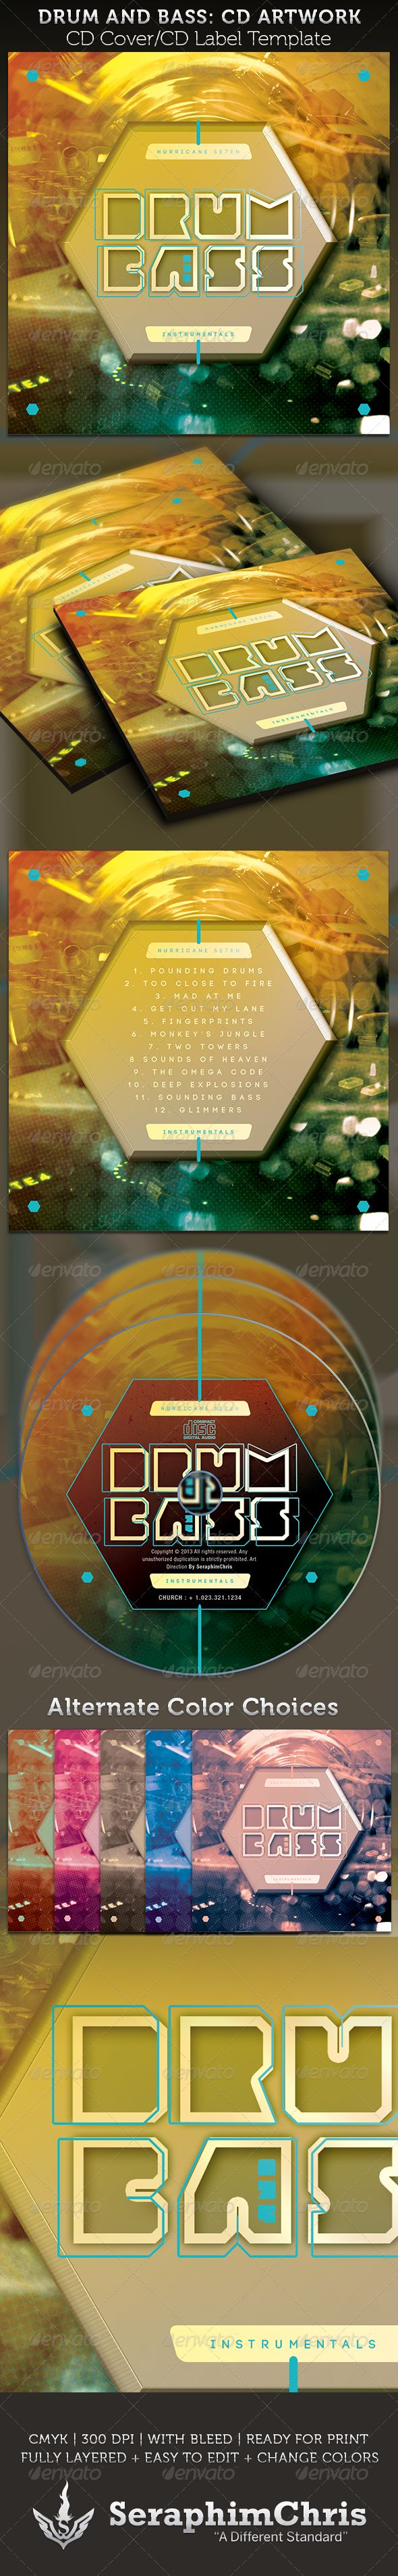 Drum and Bass CD Cover Artwork Template — Photoshop PSD #bass music #demo • Available here → https://graphicriver.net/item/drum-and-bass-cd-cover-artwork-template/3856254?ref=pxcr